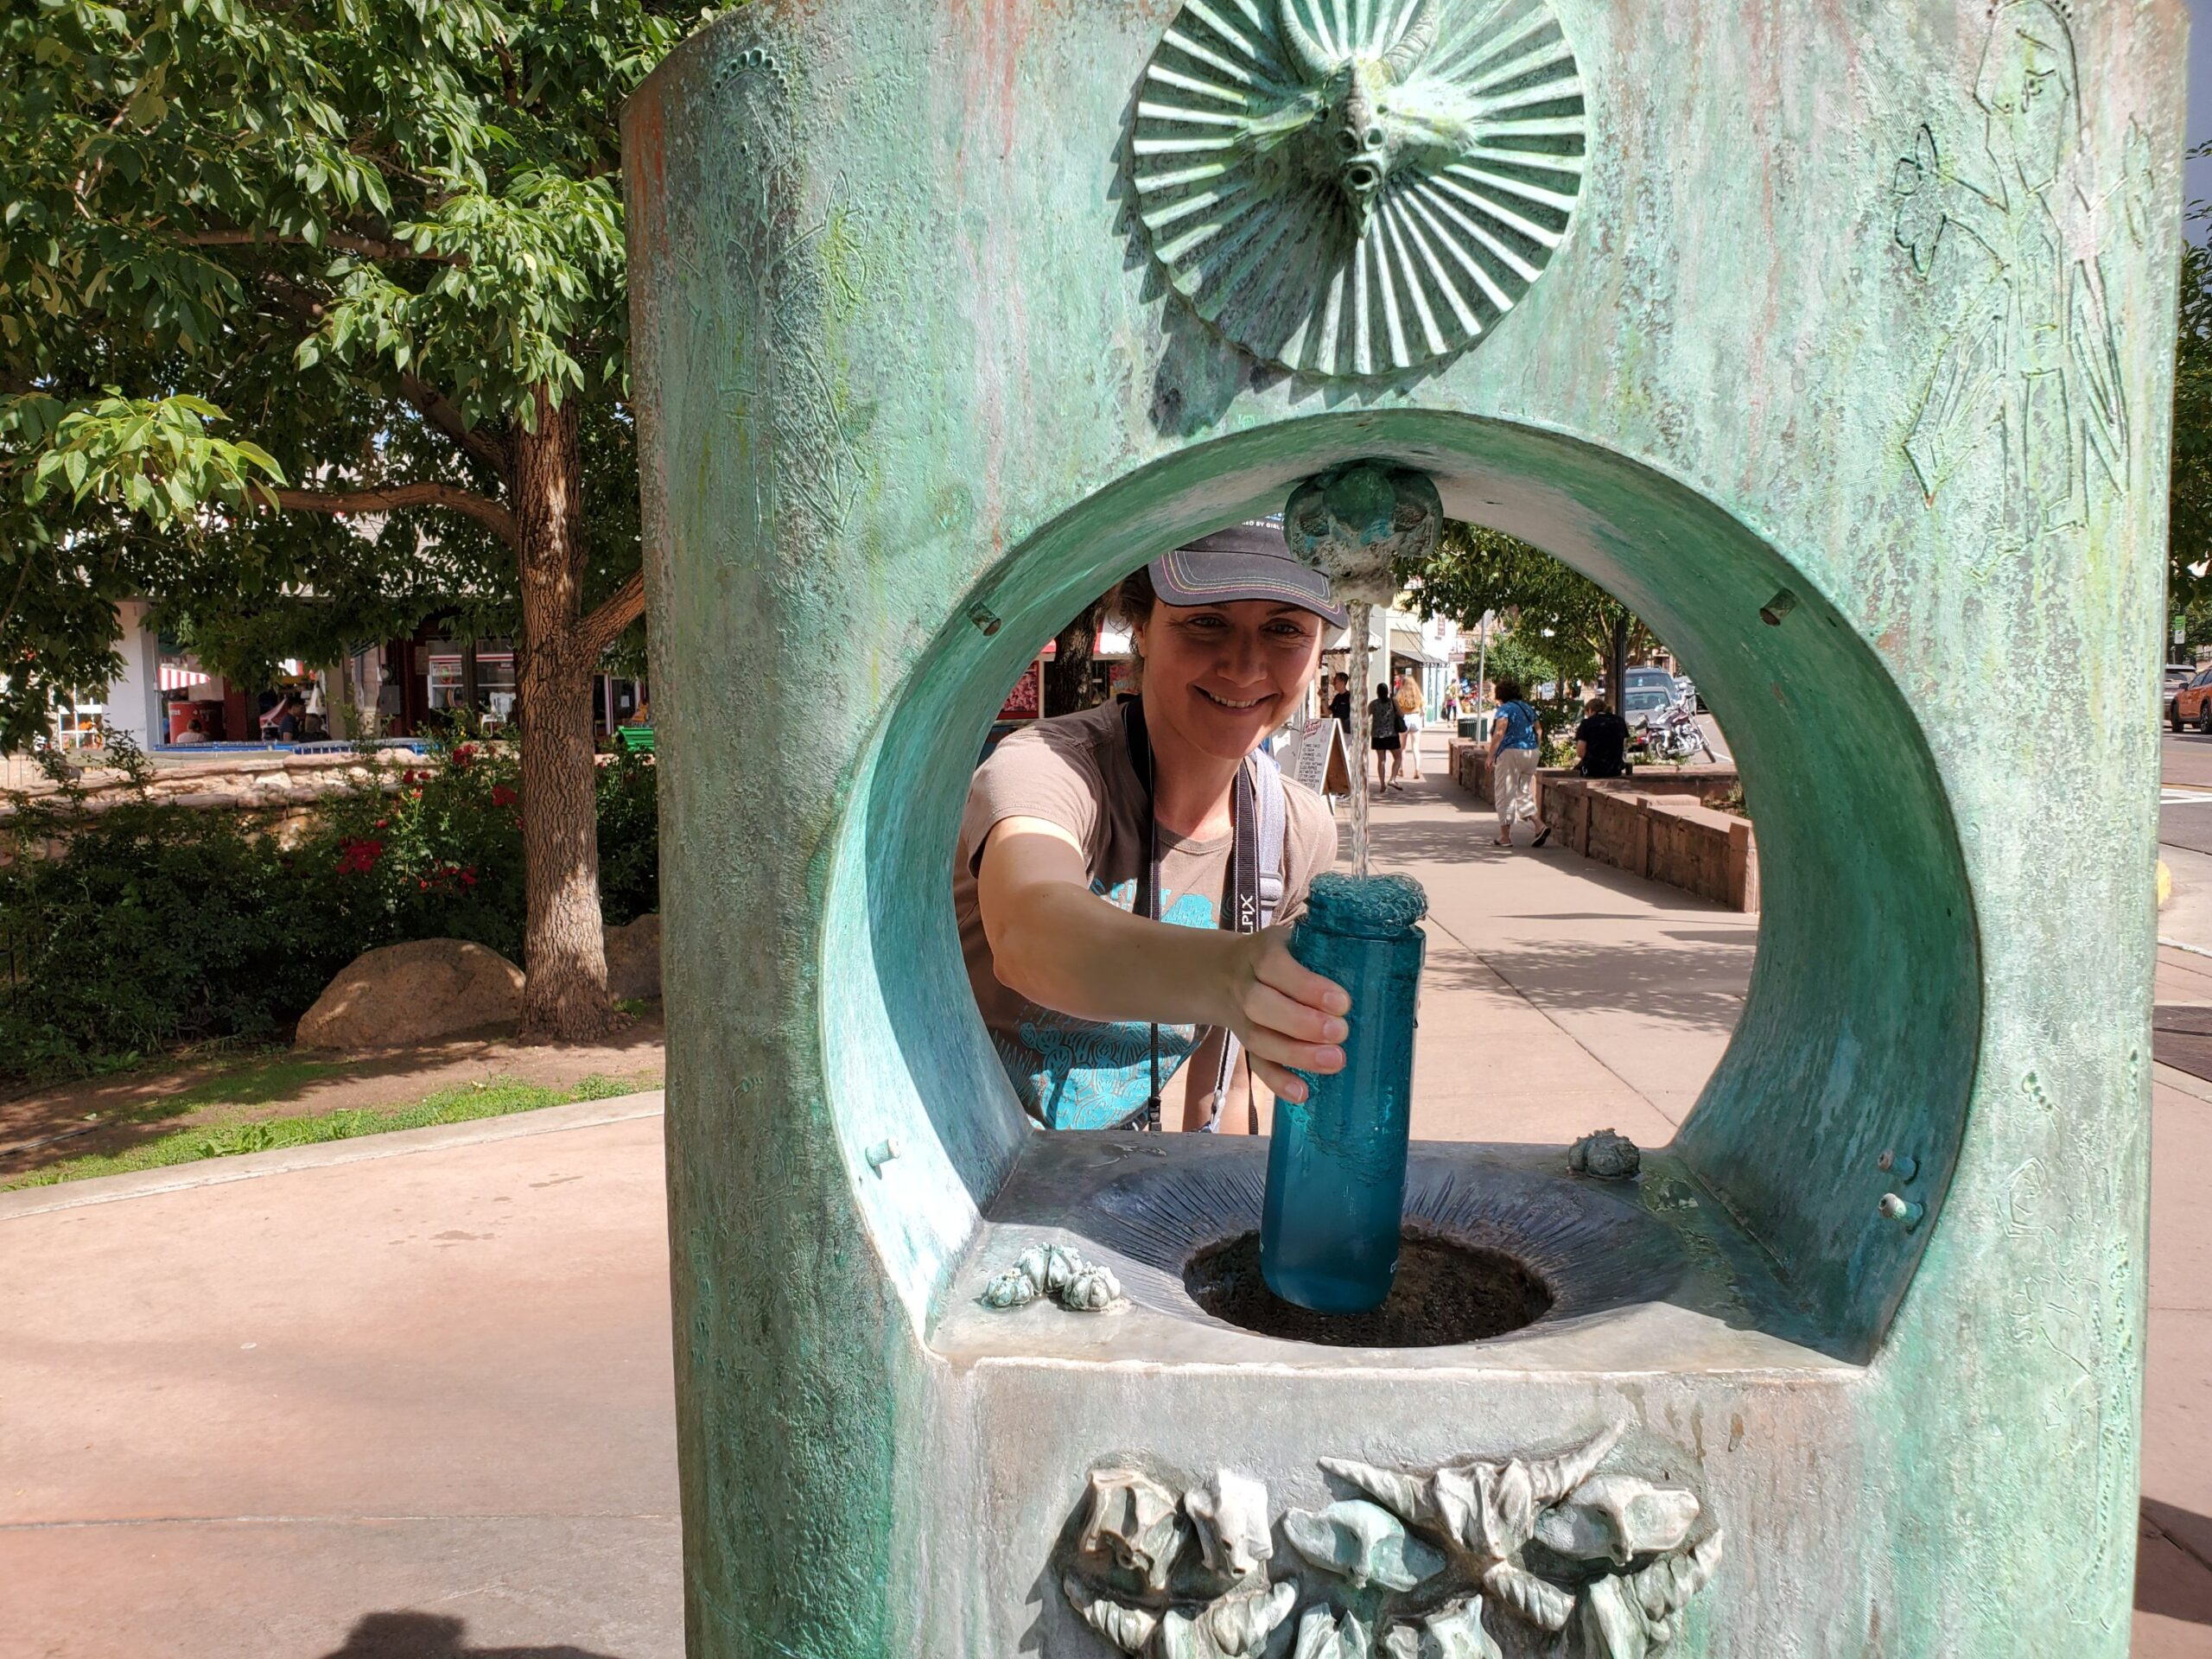 Mandy at the Mineral Water Fountain in Manitou